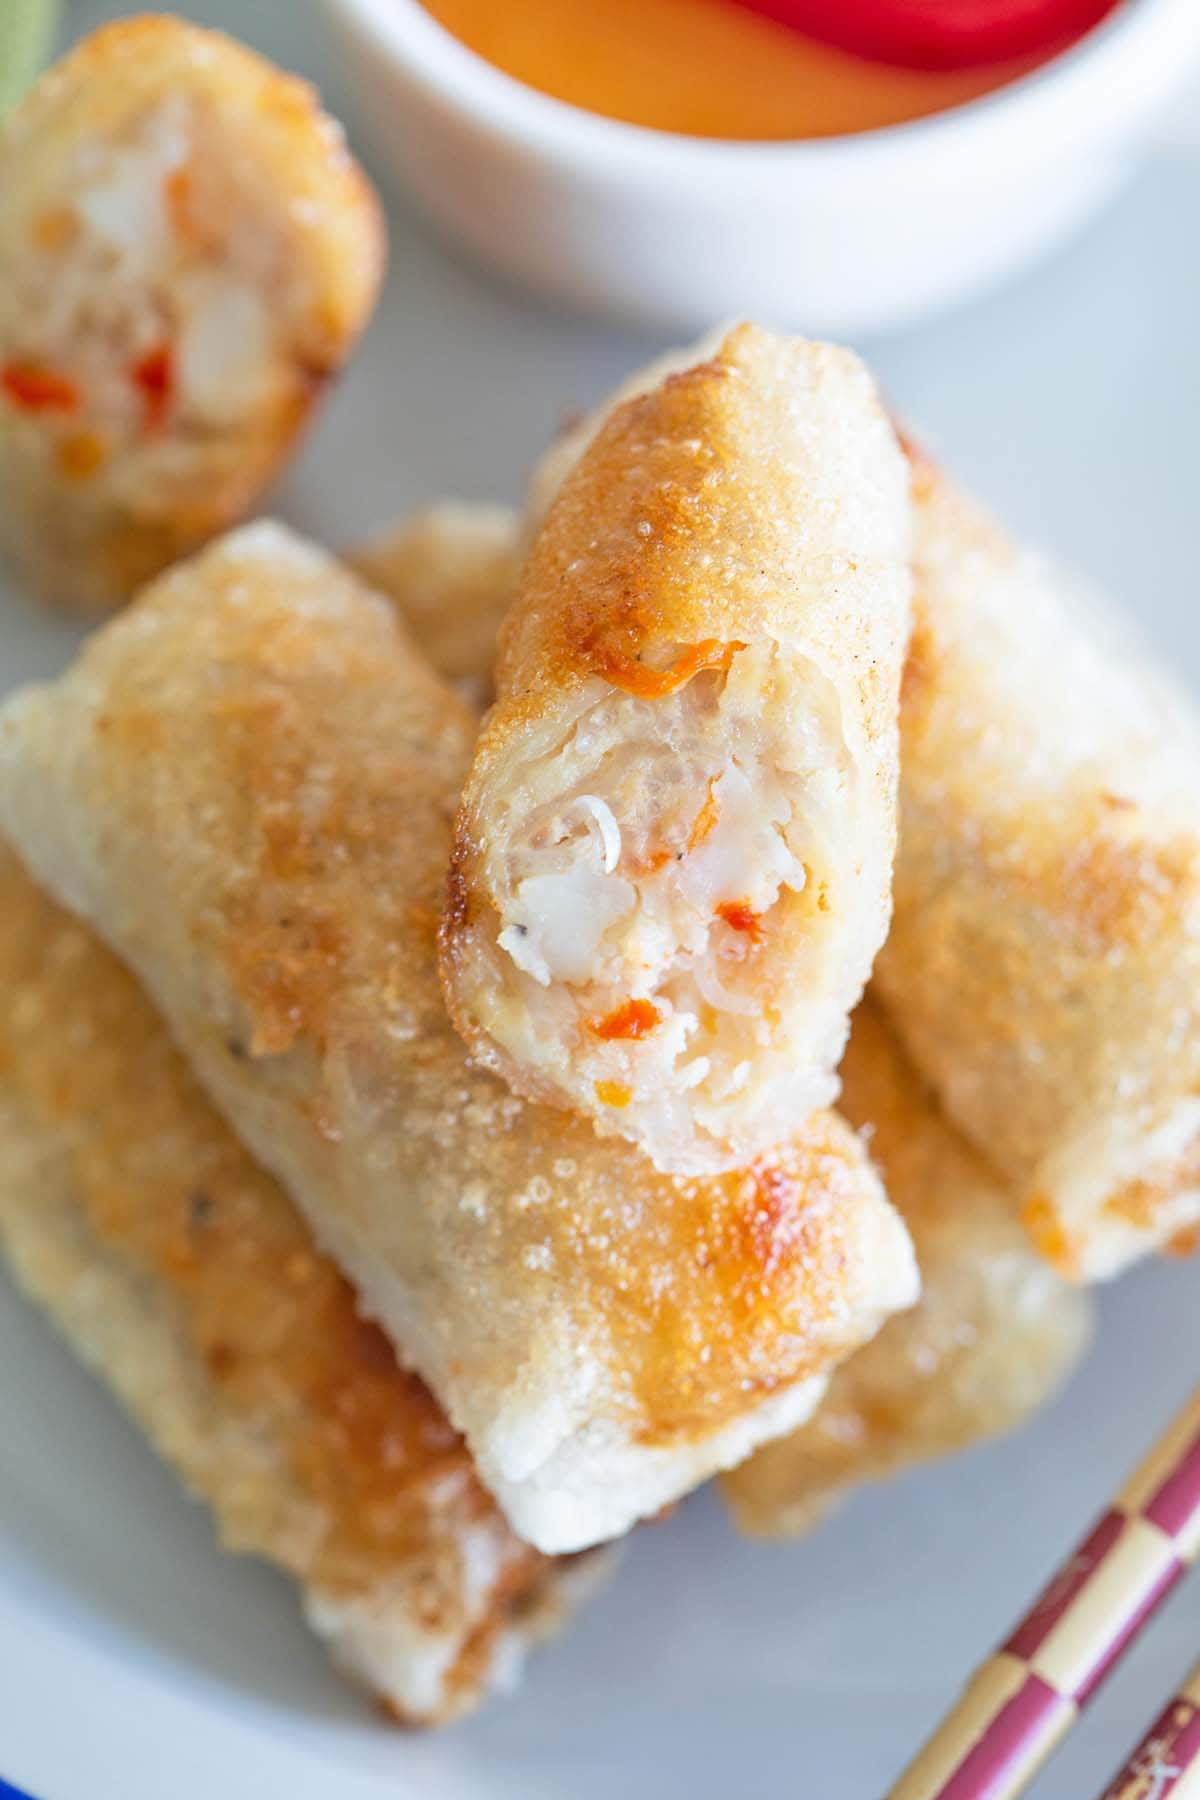 Best Vietnamese spring rolls (Cha Gio) recipe. These crispy fried Vietnamese rolls are crispy with ground pork filling and served with a dipping sauce.